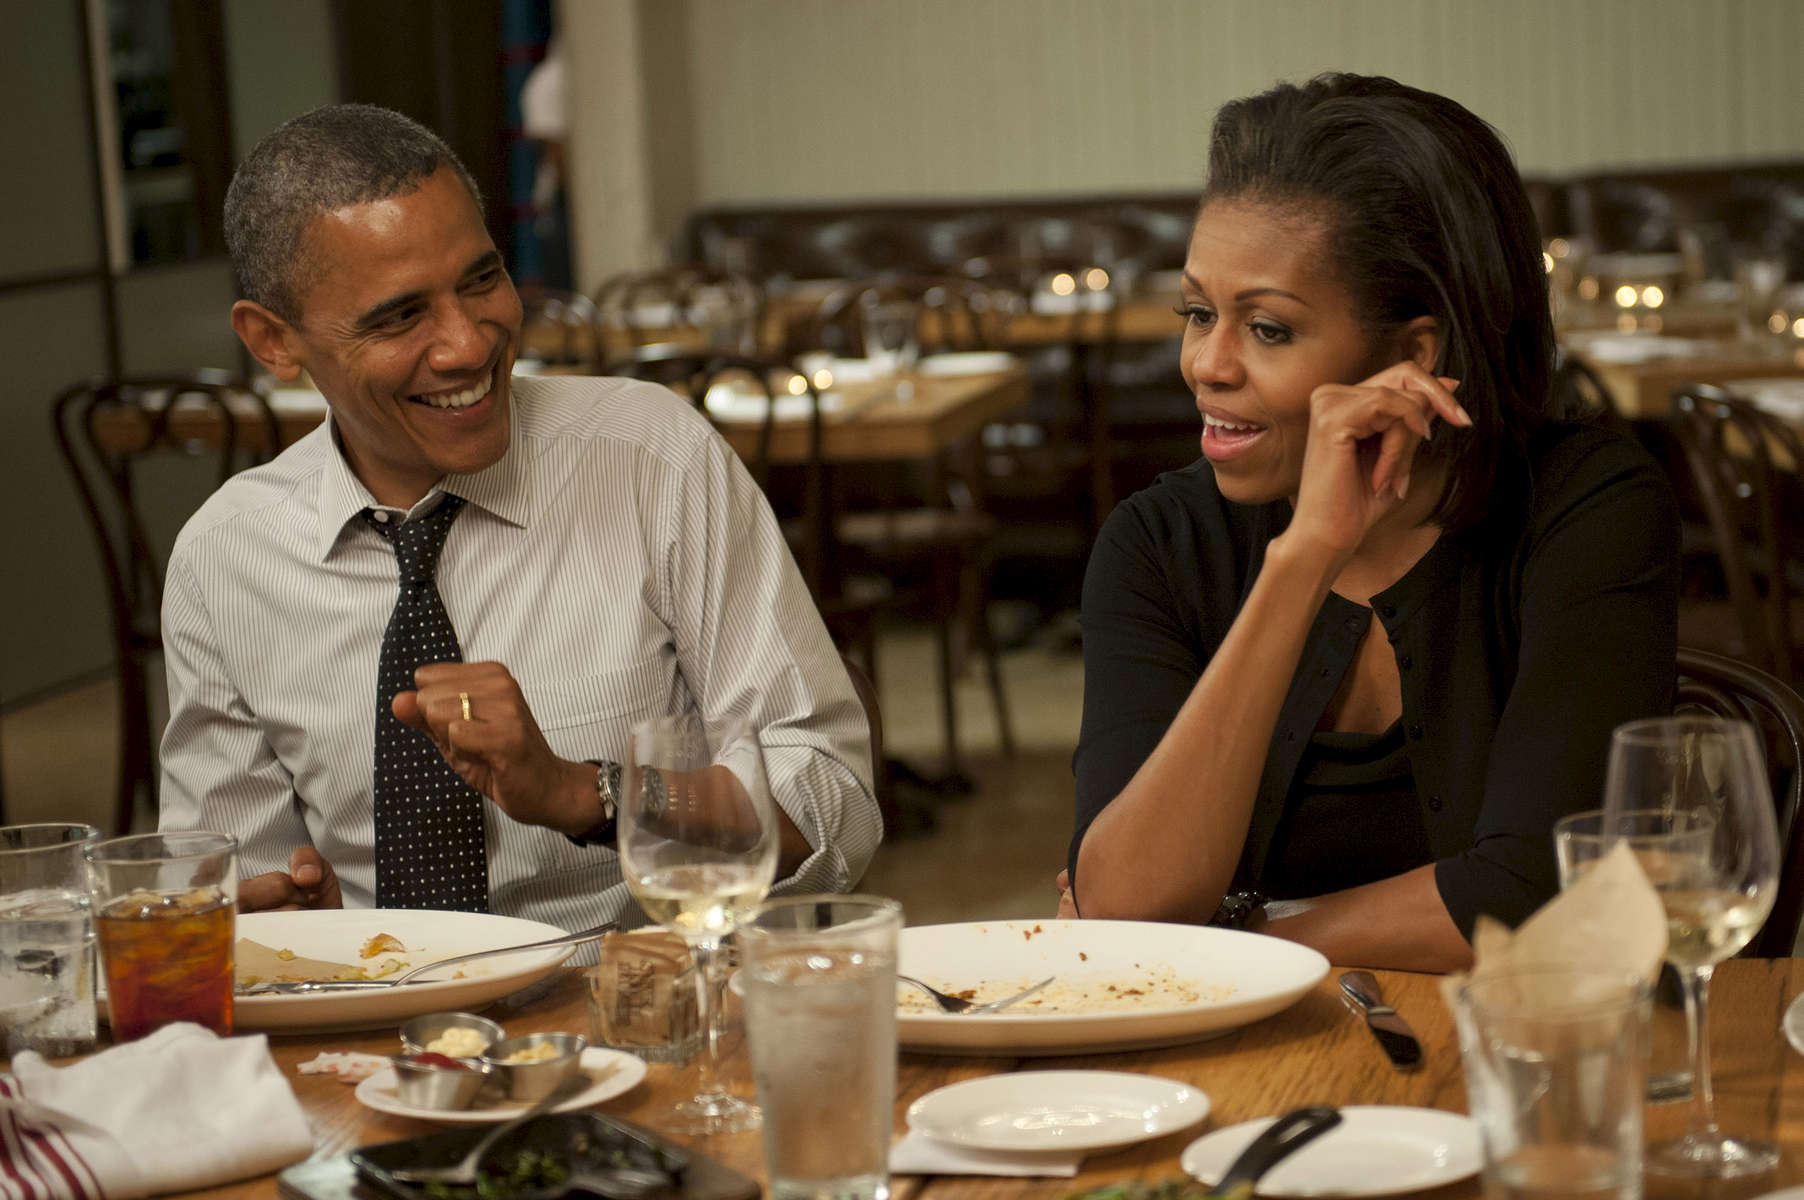 August 20, 2012 - WASHINGTON DC-  President Barack Obama and First Lady Michelle Obama show their dinner guests how they threaten to dance in public to embarrass their two daughters while dining at Mintwood Place in Washington DC. (Scout Tufankjian for Obama for America/Polaris)